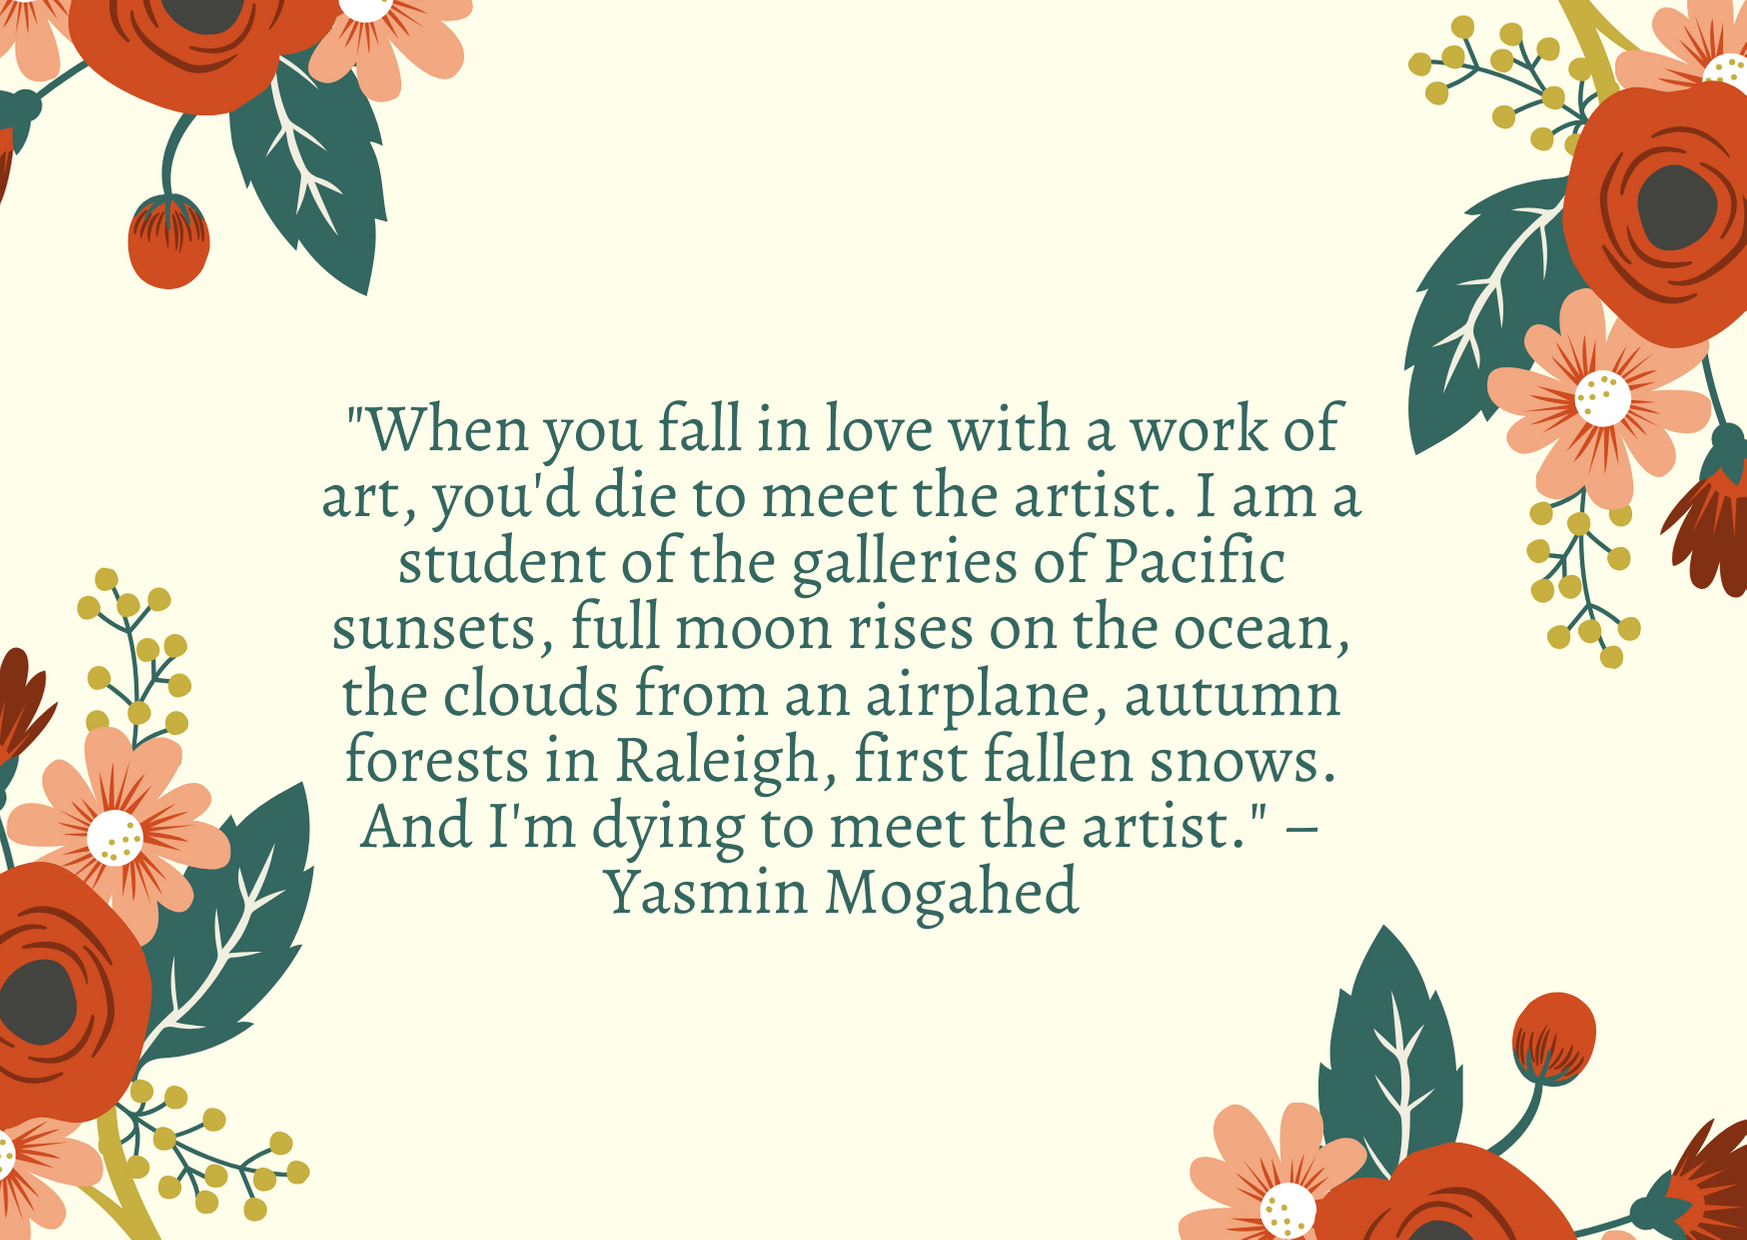 """When you fall in love with a work of art, you'd die to meet the artist. I am a student of the galleries of Pacific sunsets, full moon rises on the ocean, the clouds from an airplane, autumn forests in Raleigh, first fallen snows. And I'm dying to meet the artist."" – Yasmin Mogahed"